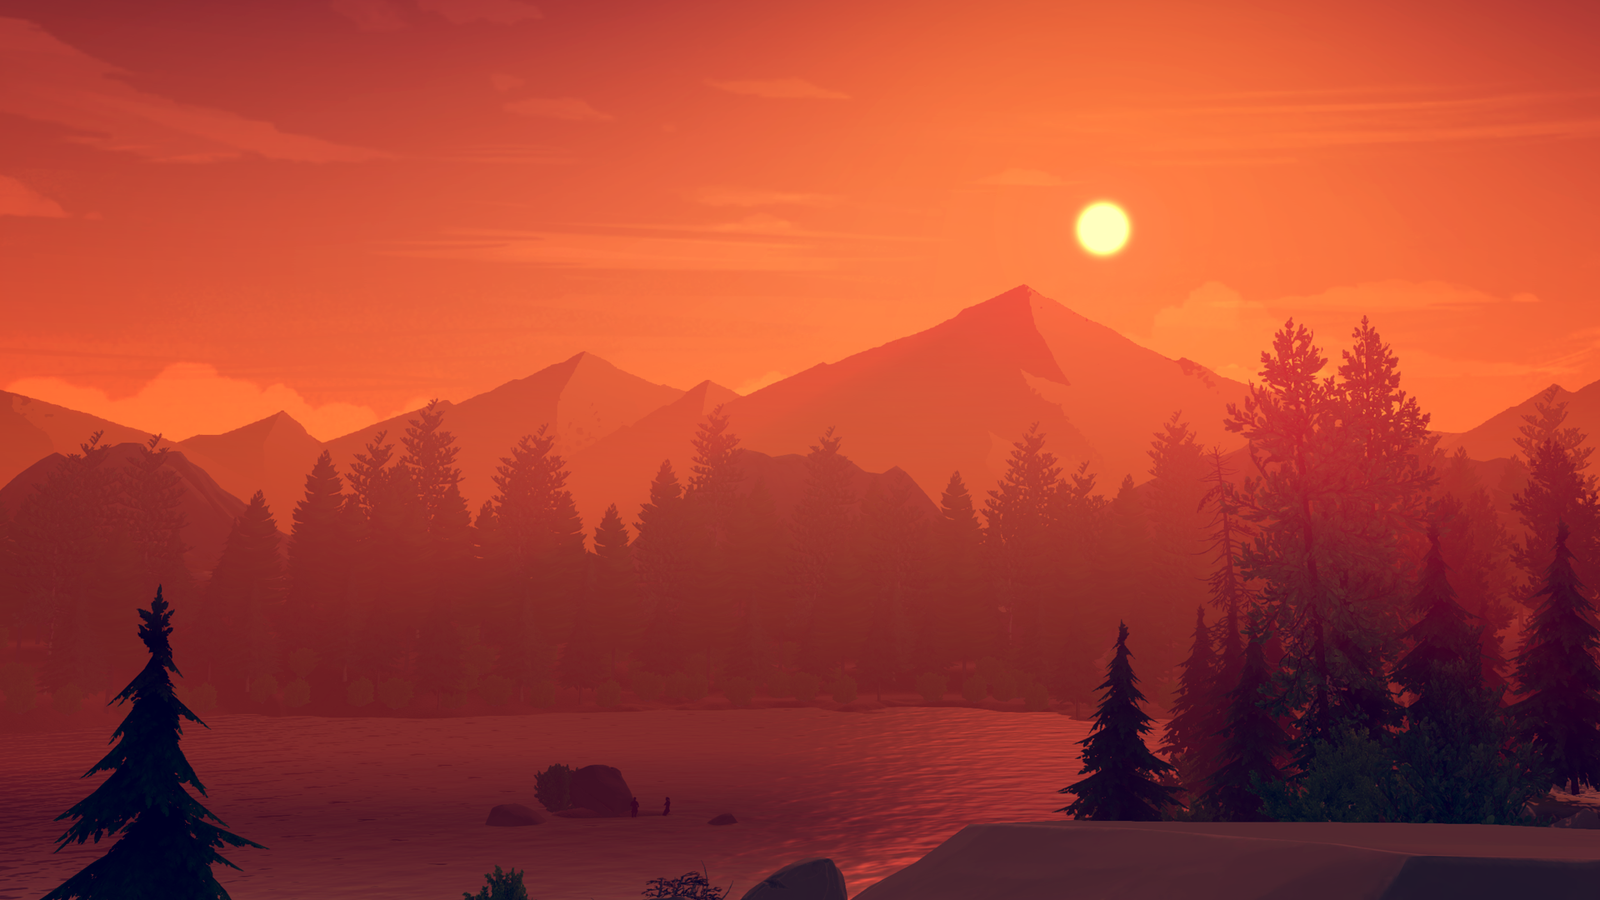 Firewatch Review A Game That Perfectly Captures The Beauty And Terror Of Nature Landscape Illustration Firewatch Sunset Painting